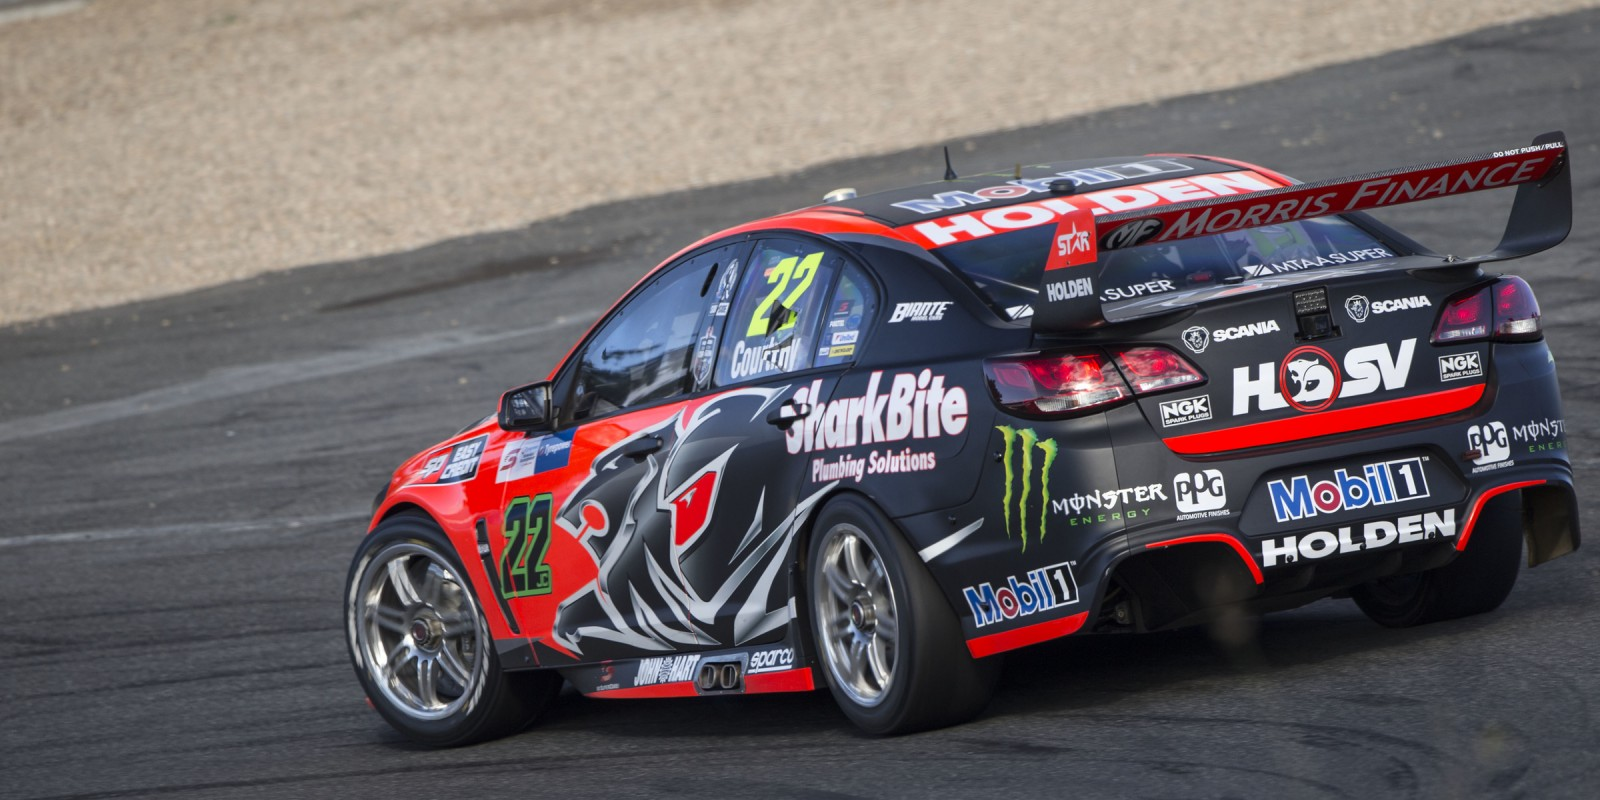 Holden Race Team's James Courtney at the 2016 V8 Supercars Race in Symmons Plains